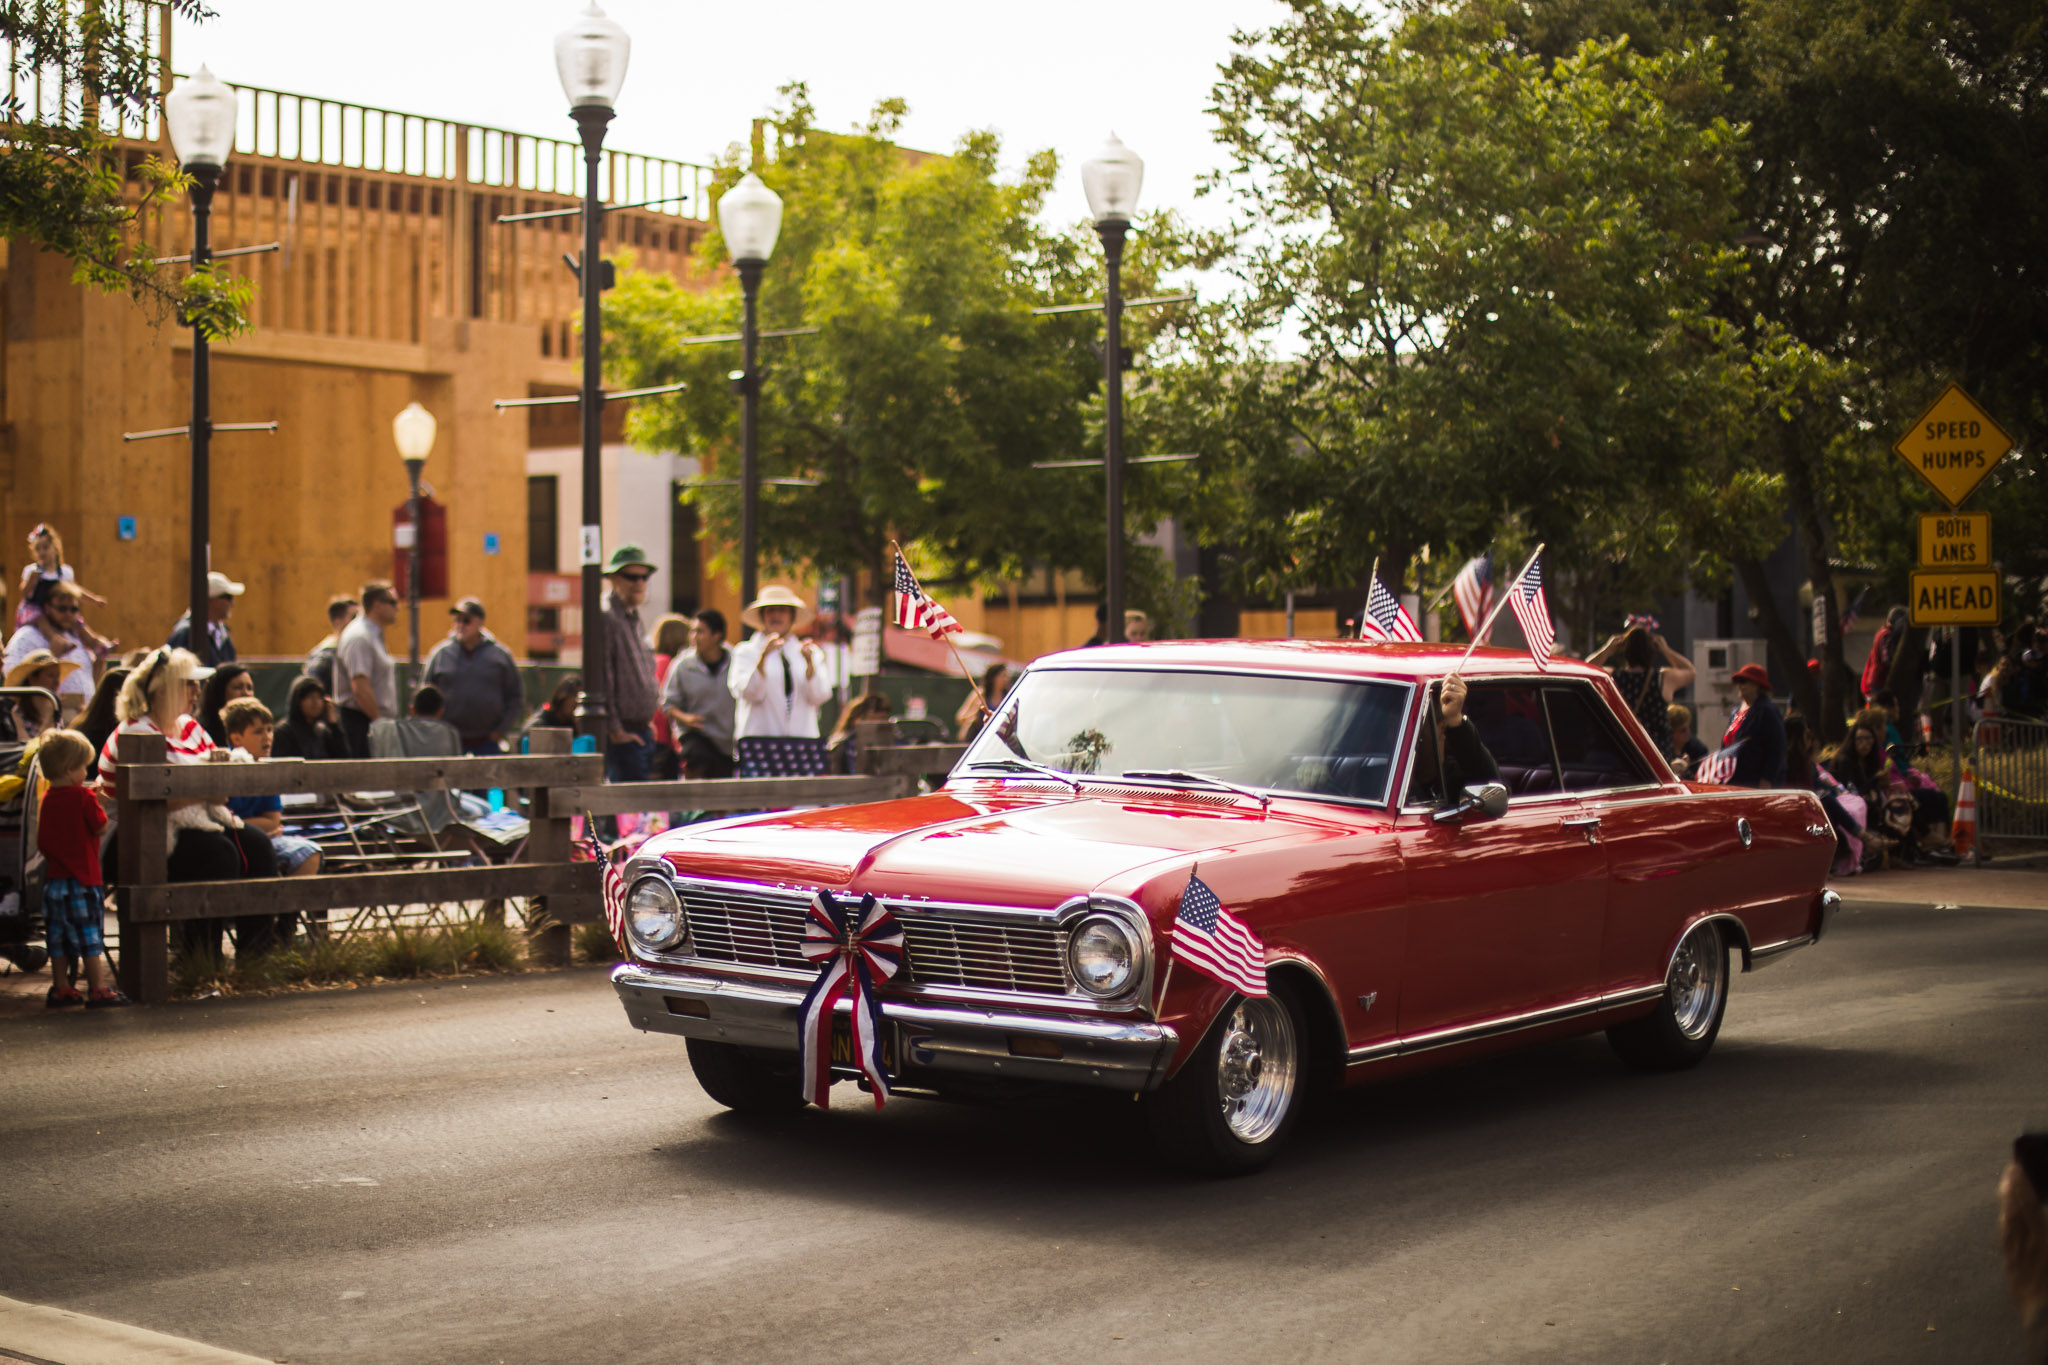 Archer_Inspired_Photography_Morgan_Hill_California_4th_of_july_parade-16.jpg